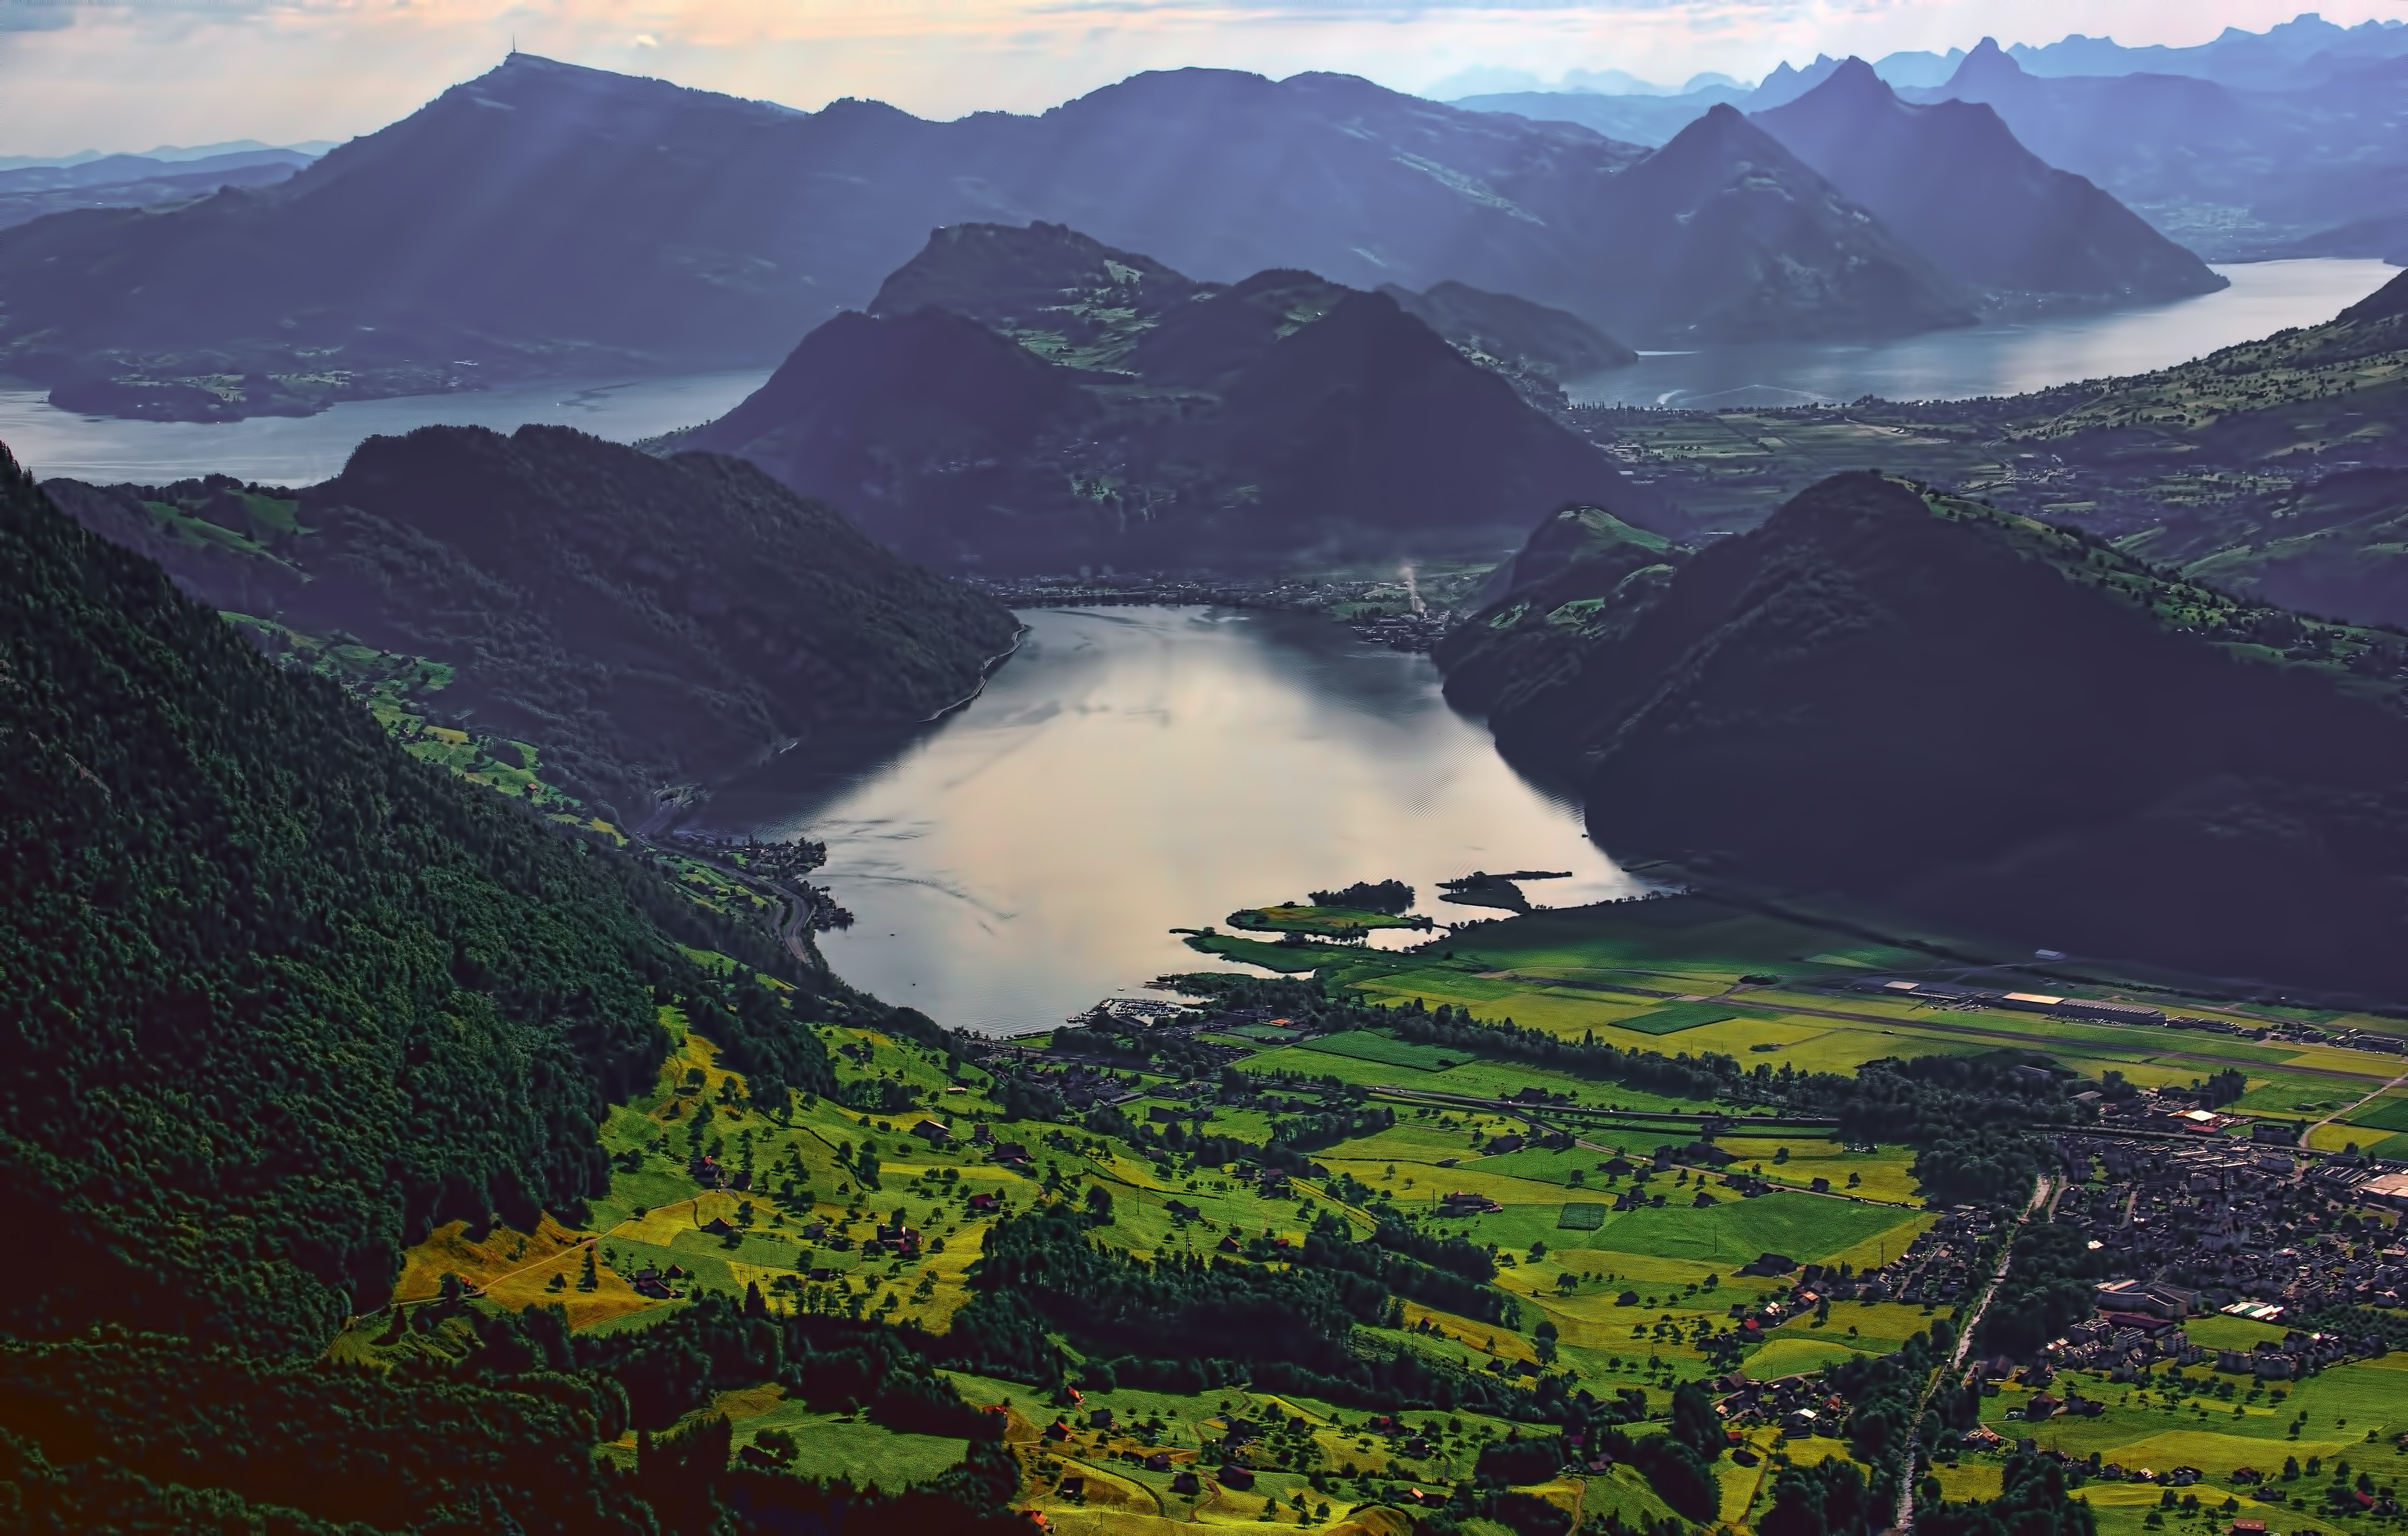 aerial photography of body of water surrounded by mountains